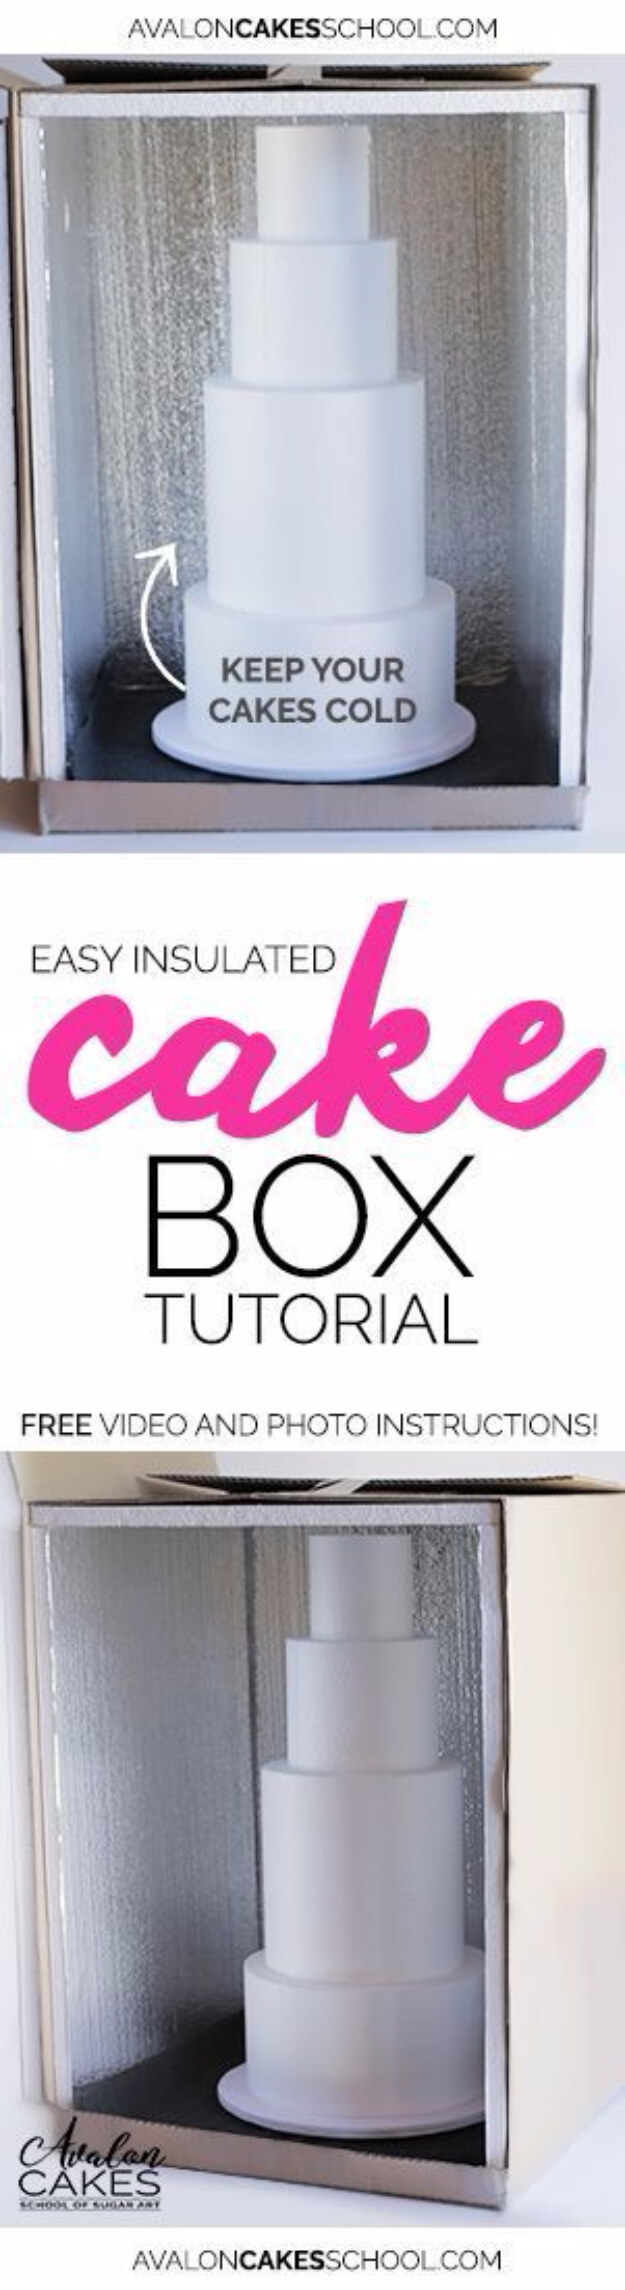 Easy Insulated Cake Box